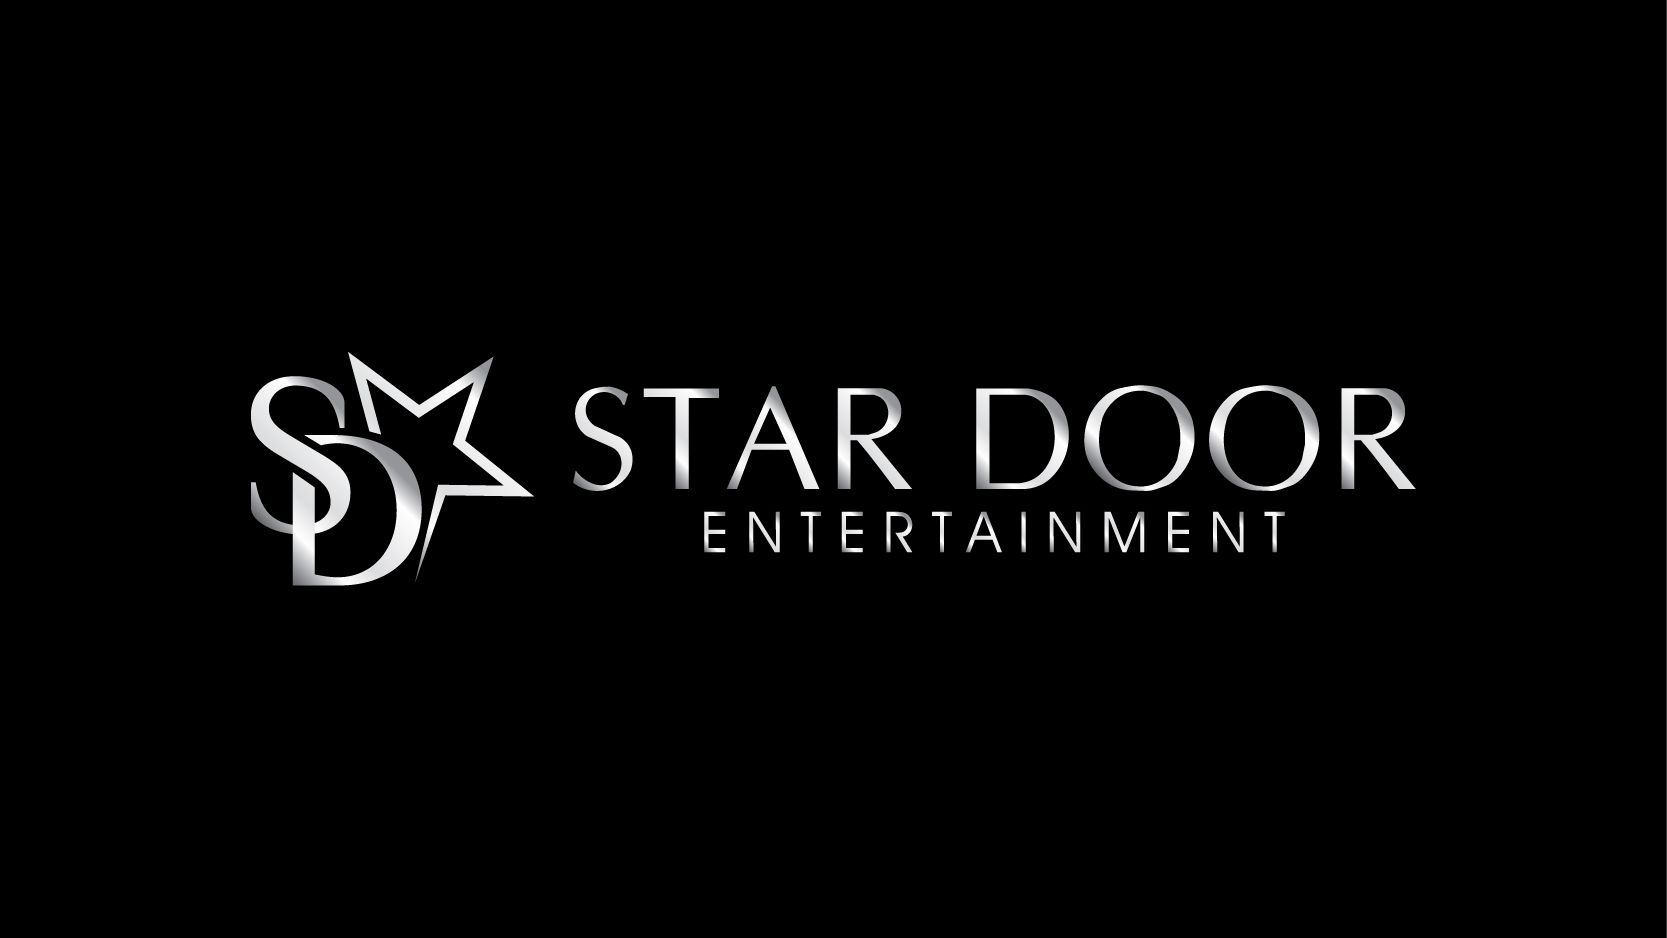 FK - OLUS - Star Door Entertainment (2nd Rev.)-01